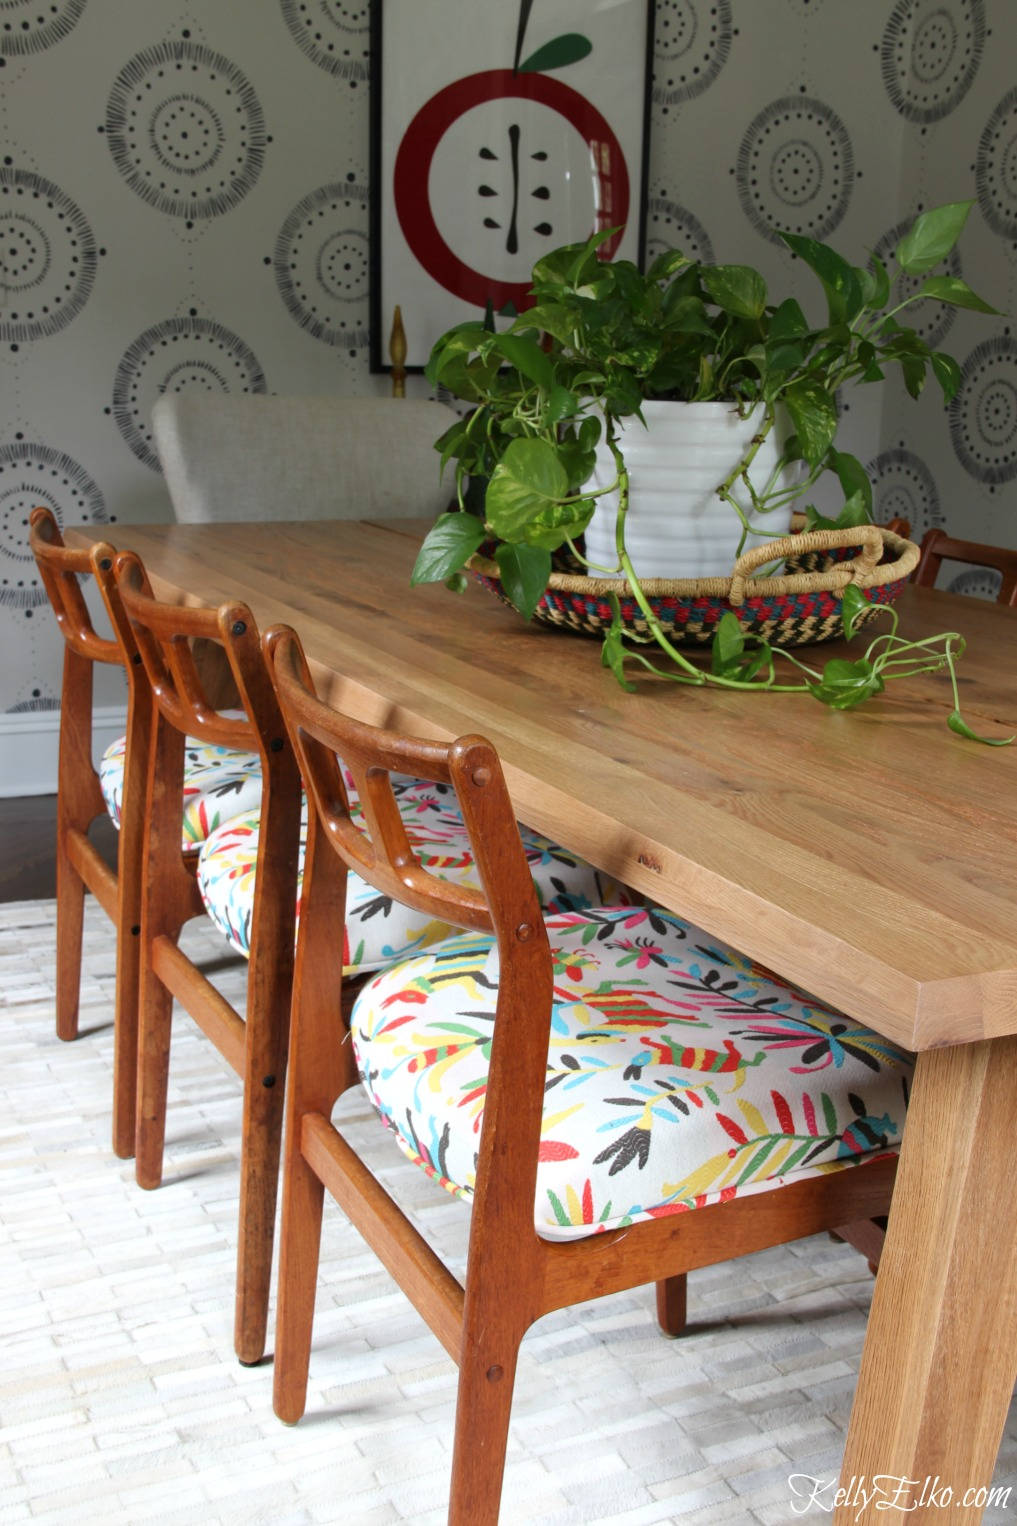 Article Dining Table and vintage chairs with otomi fabric kellyelko.com #diningroom #diningtable #ourarticle #otomi #colorlovers #midcentury #danishmodern #vintagestyle #eclecticstyle #bohostyle